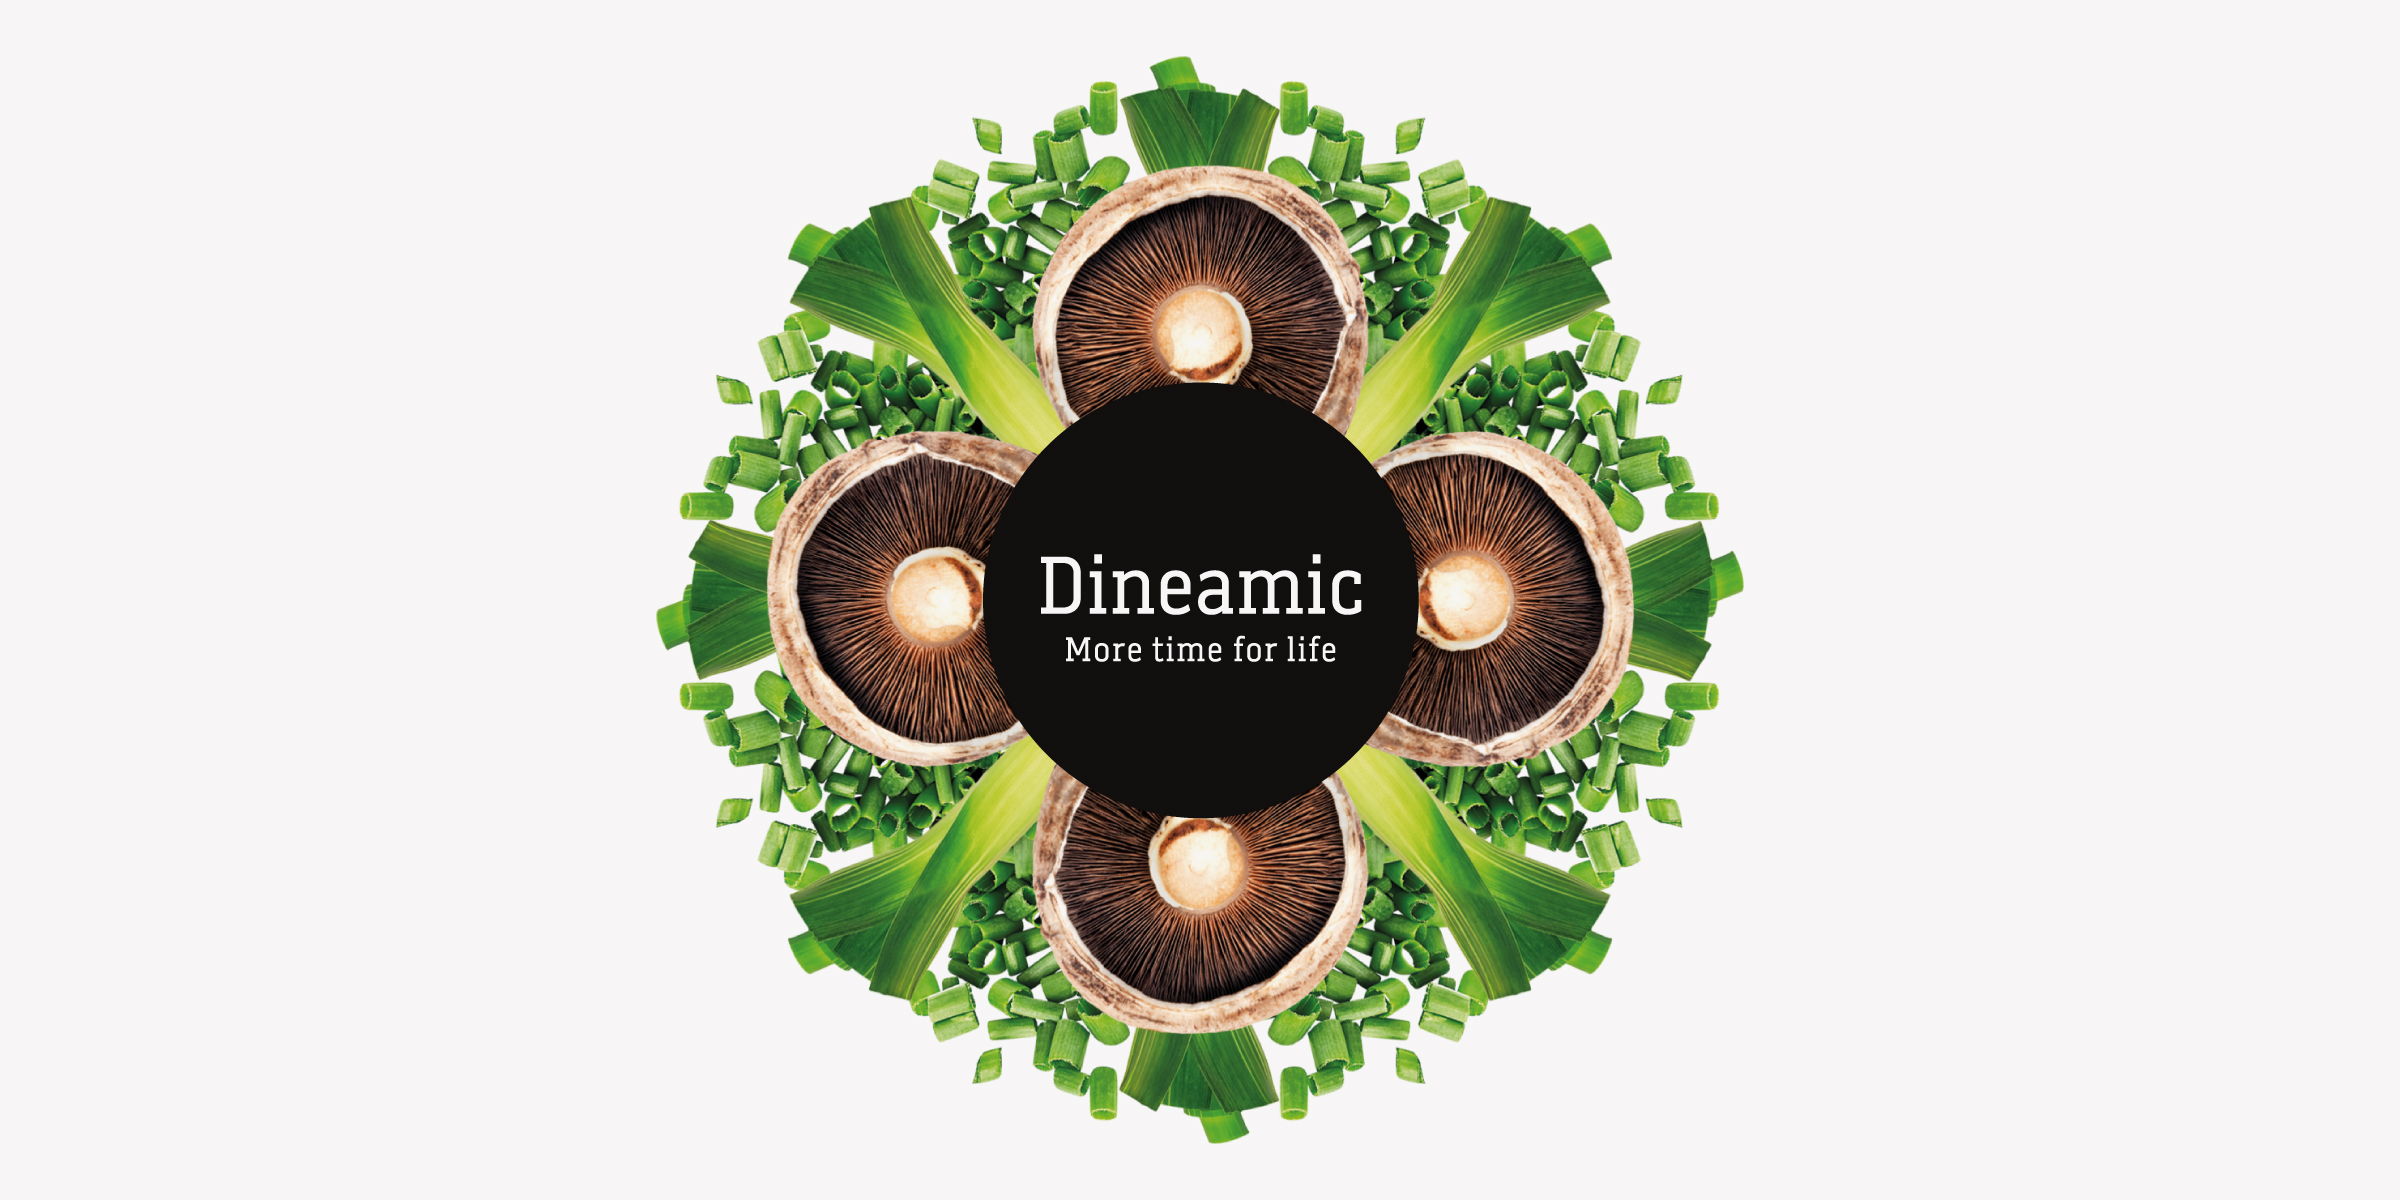 Davidson Branding FMCG Dineamic Packaging Visual Language Kaleidoscope Spring Onion Mushroom Banner